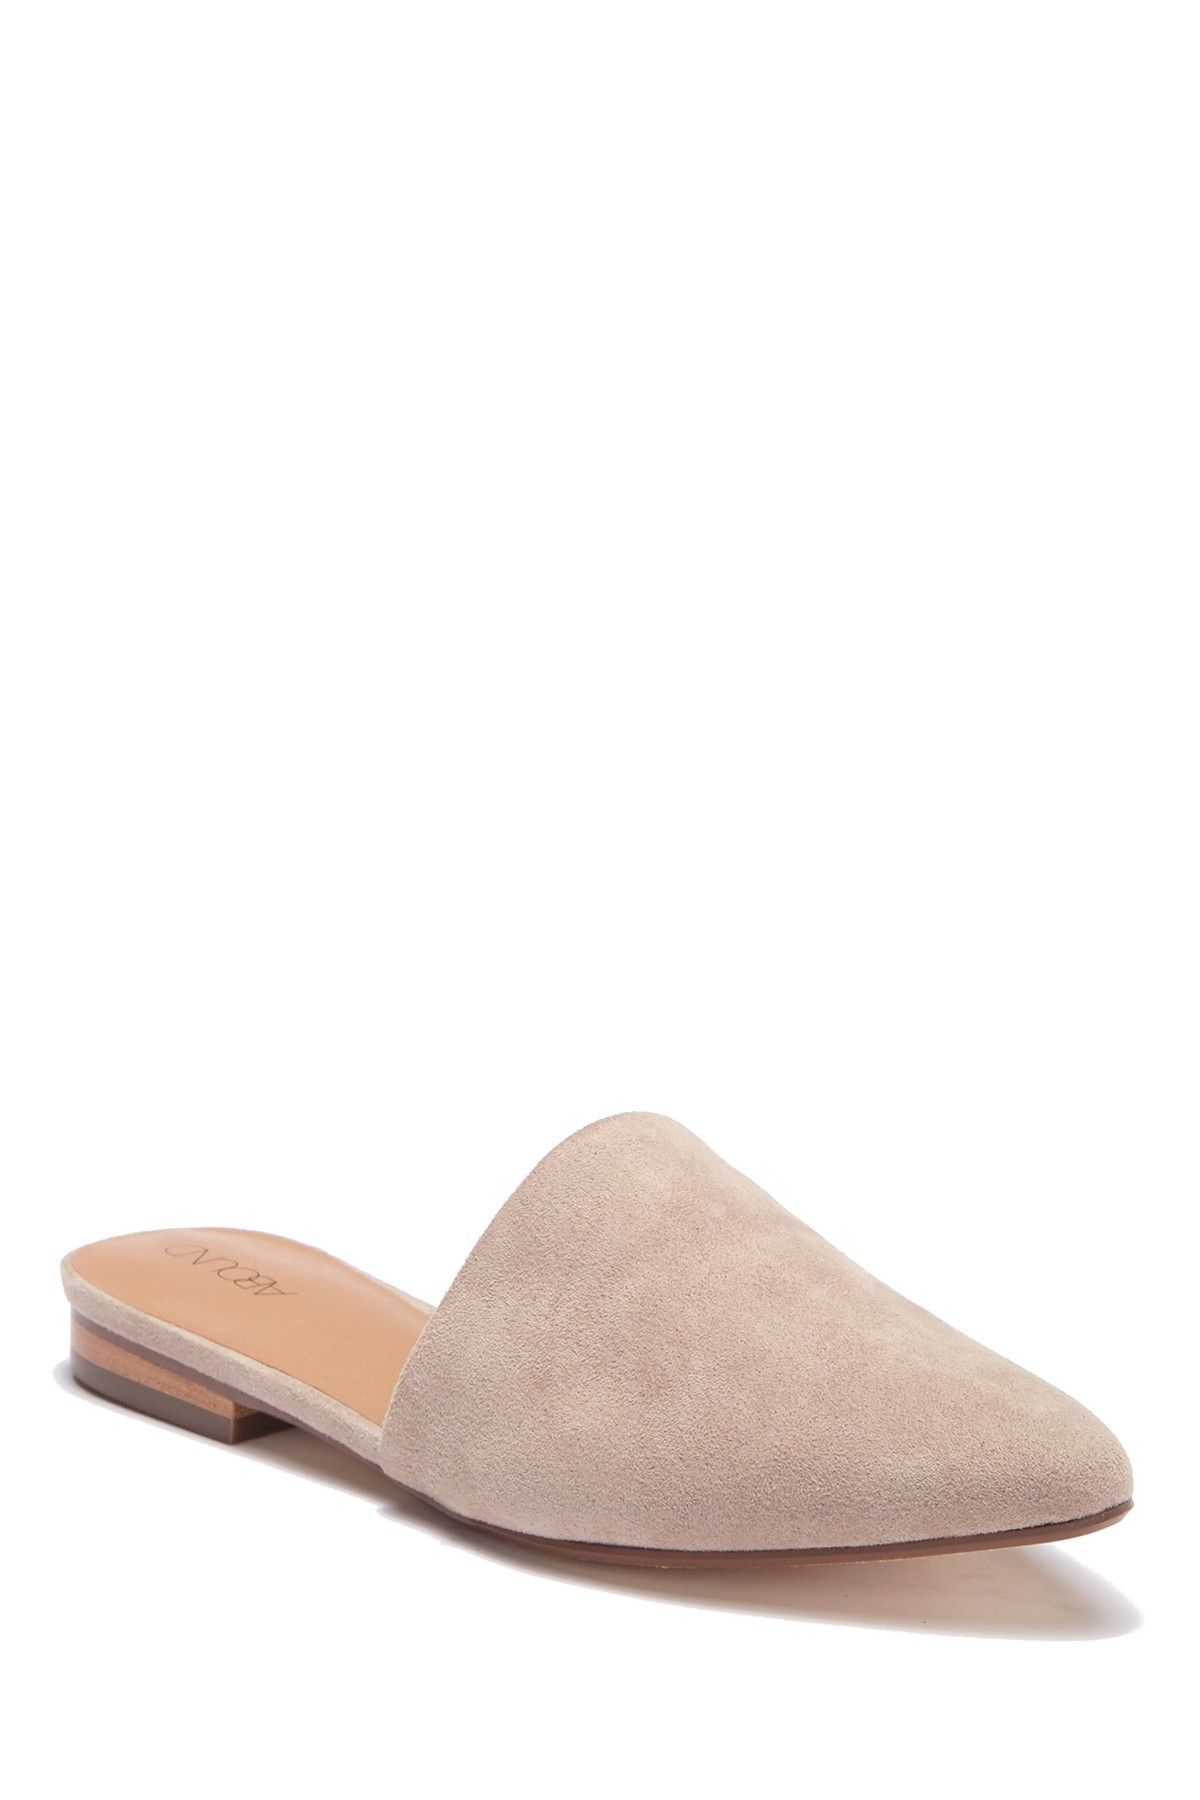 Abound   Amelya Casual Mule   Nordstrom